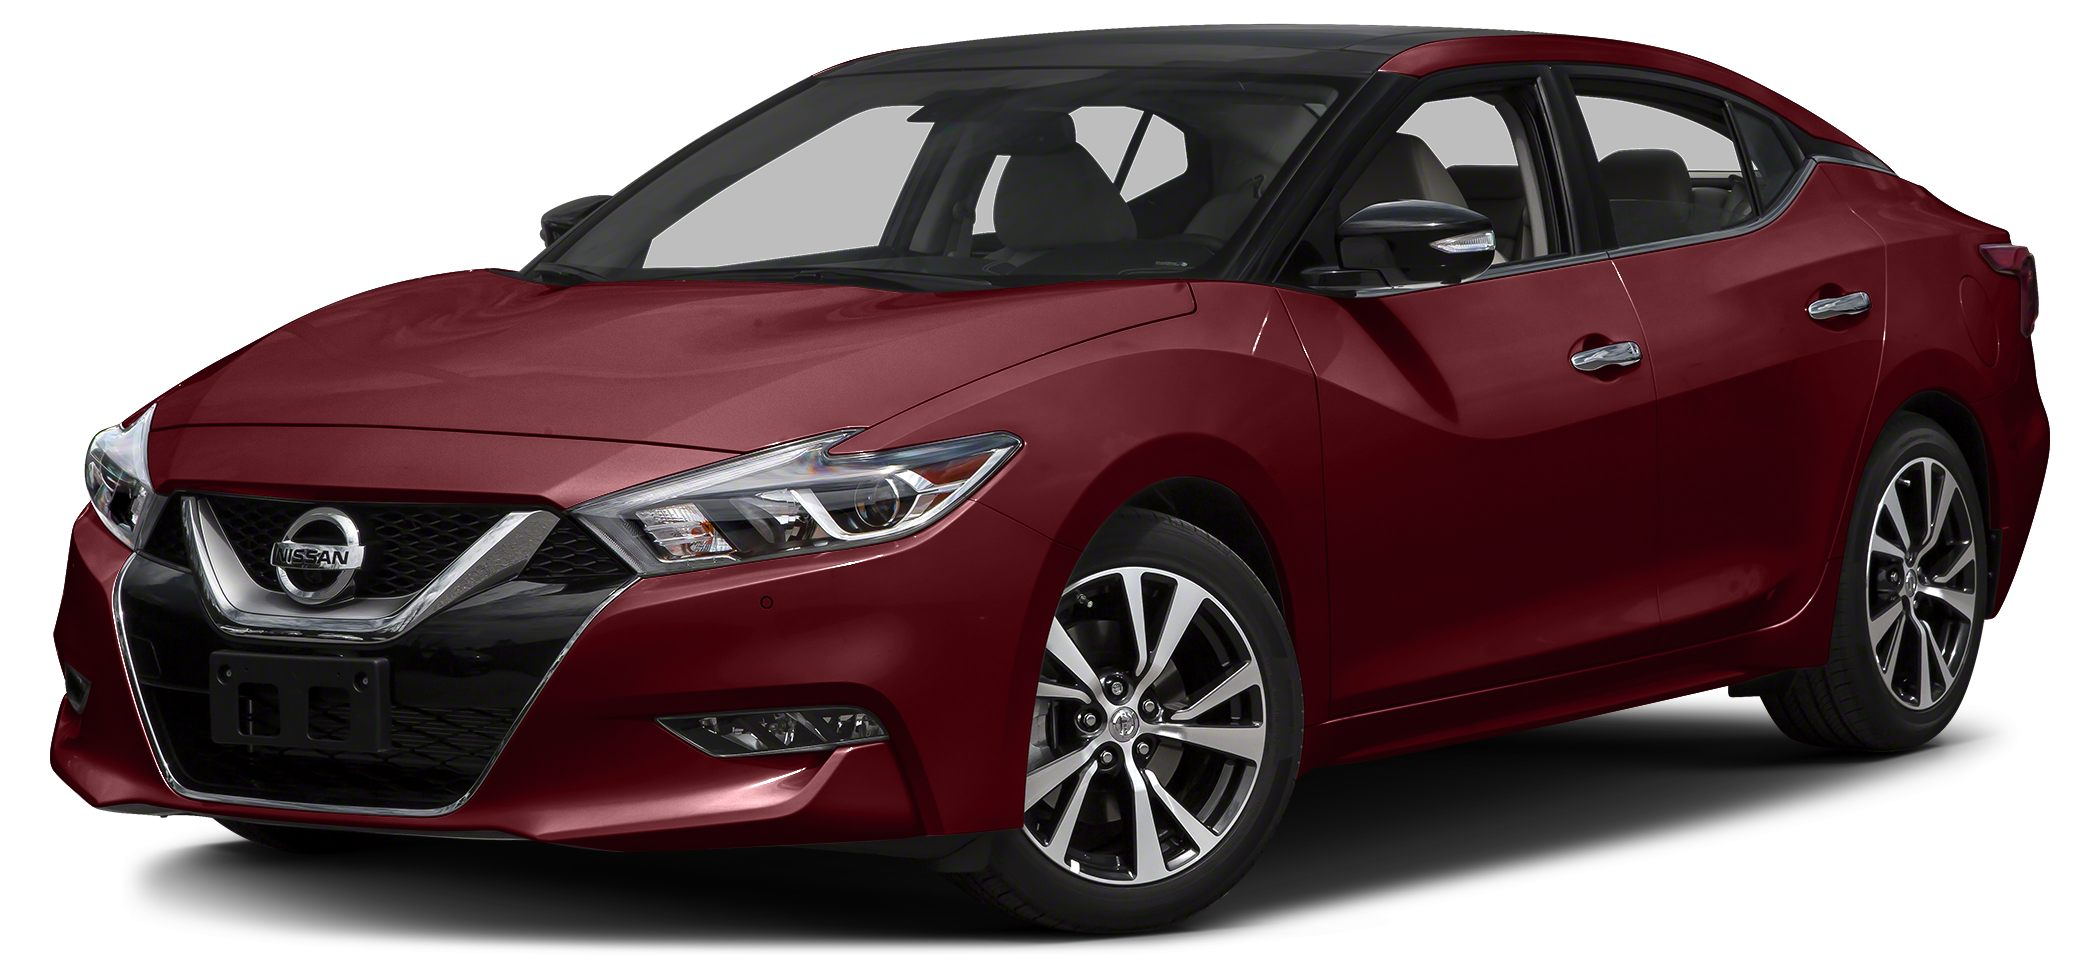 2017 Nissan Maxima 35 SL Priced to sell 4512 below MSRP -Great Gas Mileage- Navigation Blu